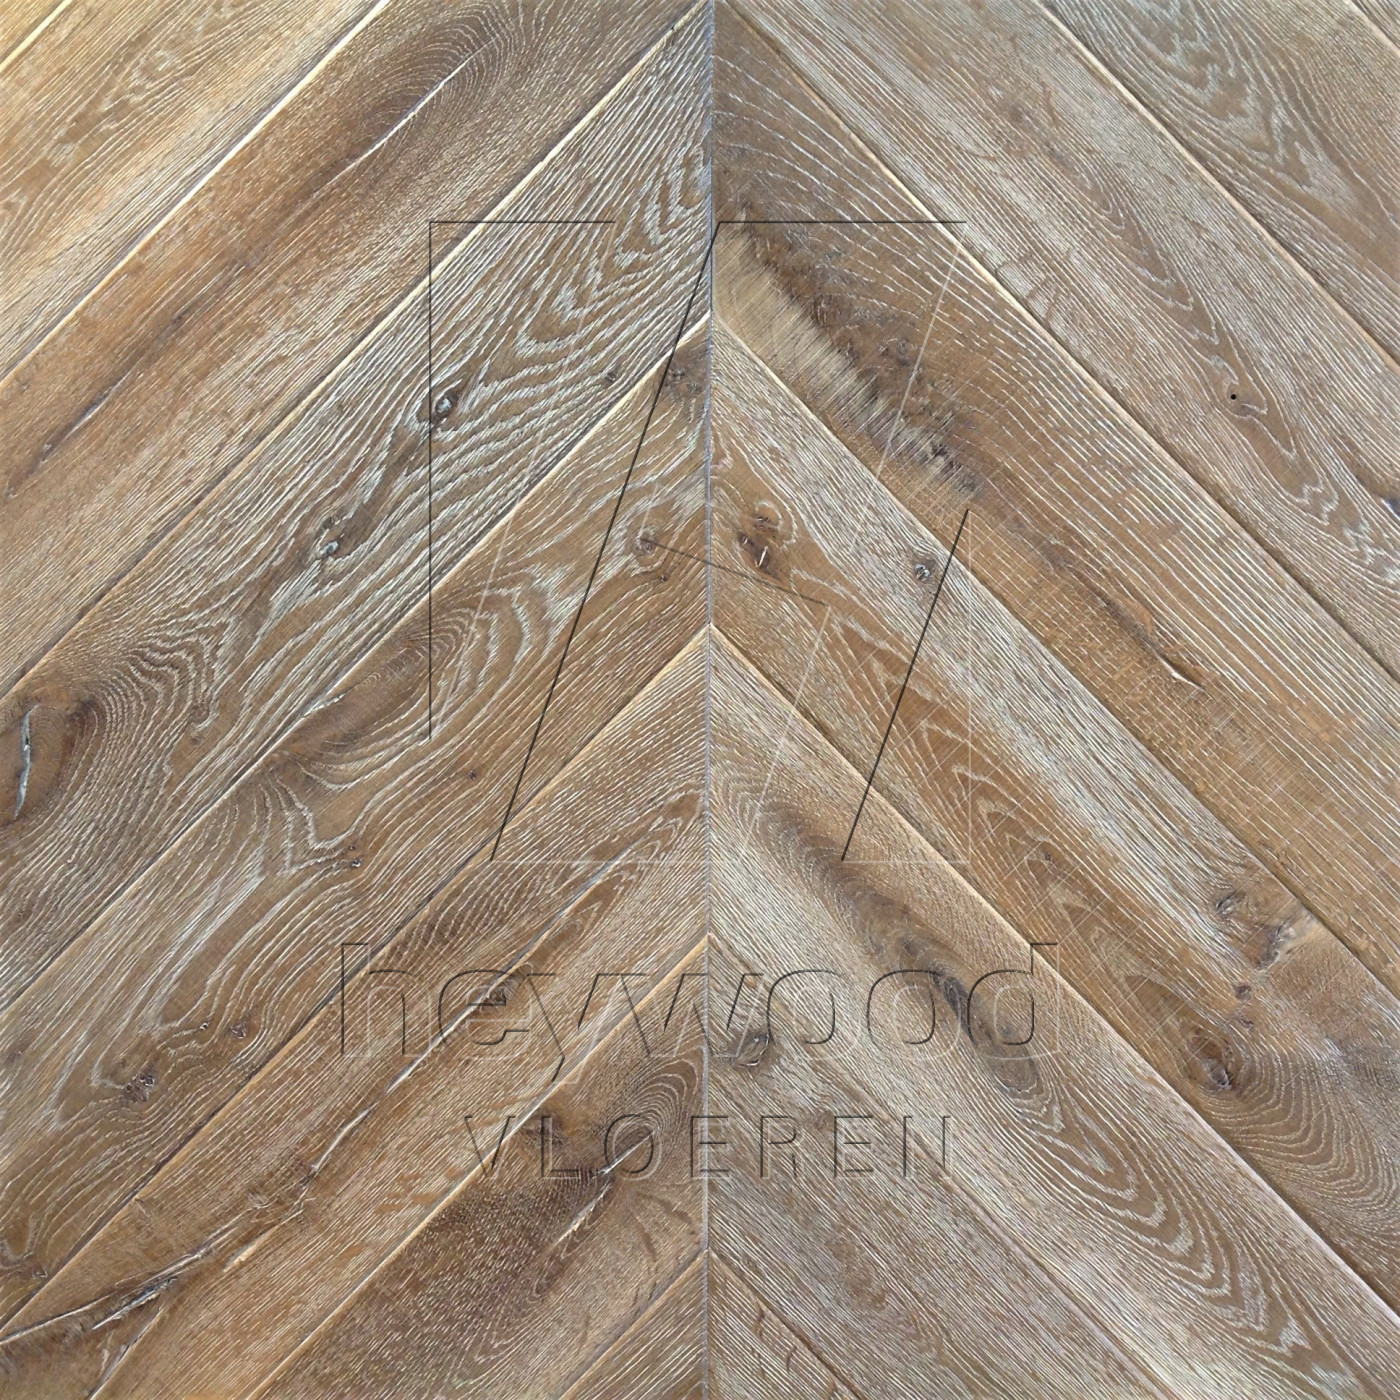 Knotting Hill Chevron 'Gotland' in Chevron of Pattern & Panel Floors